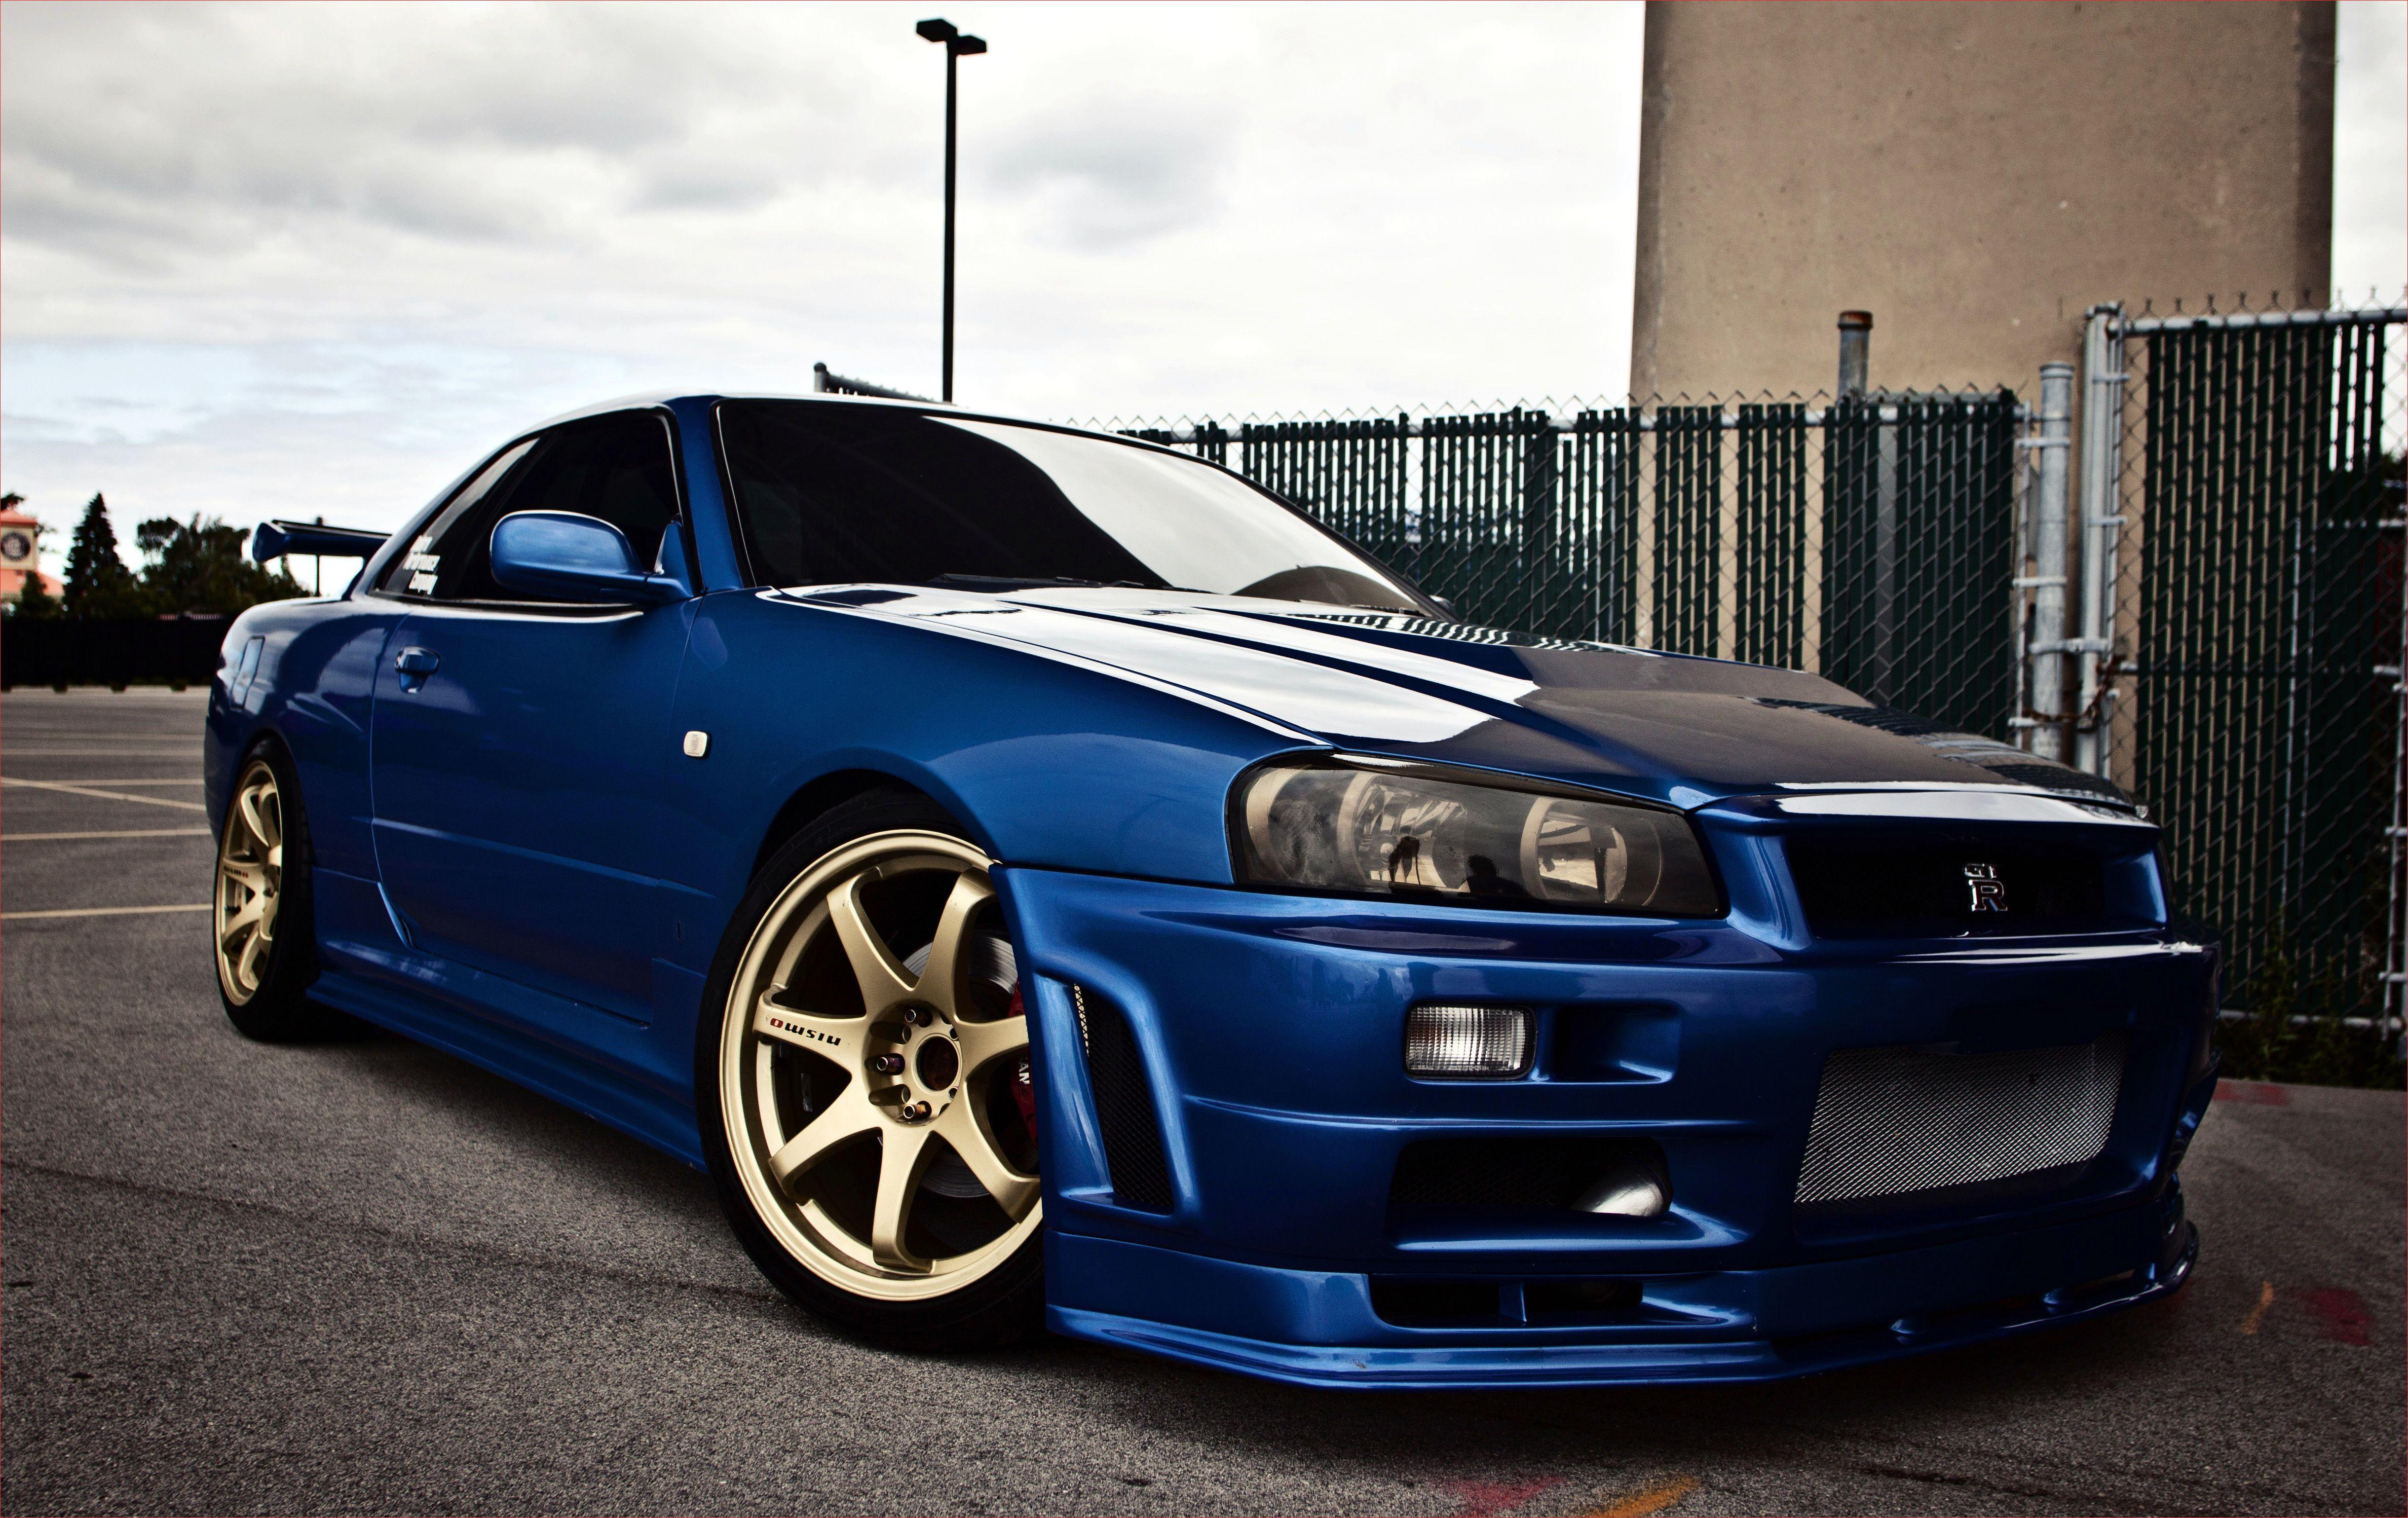 Nissan skyline wallpapers top free nissan skyline backgrounds wallpaperaccess - Nissan skyline background ...